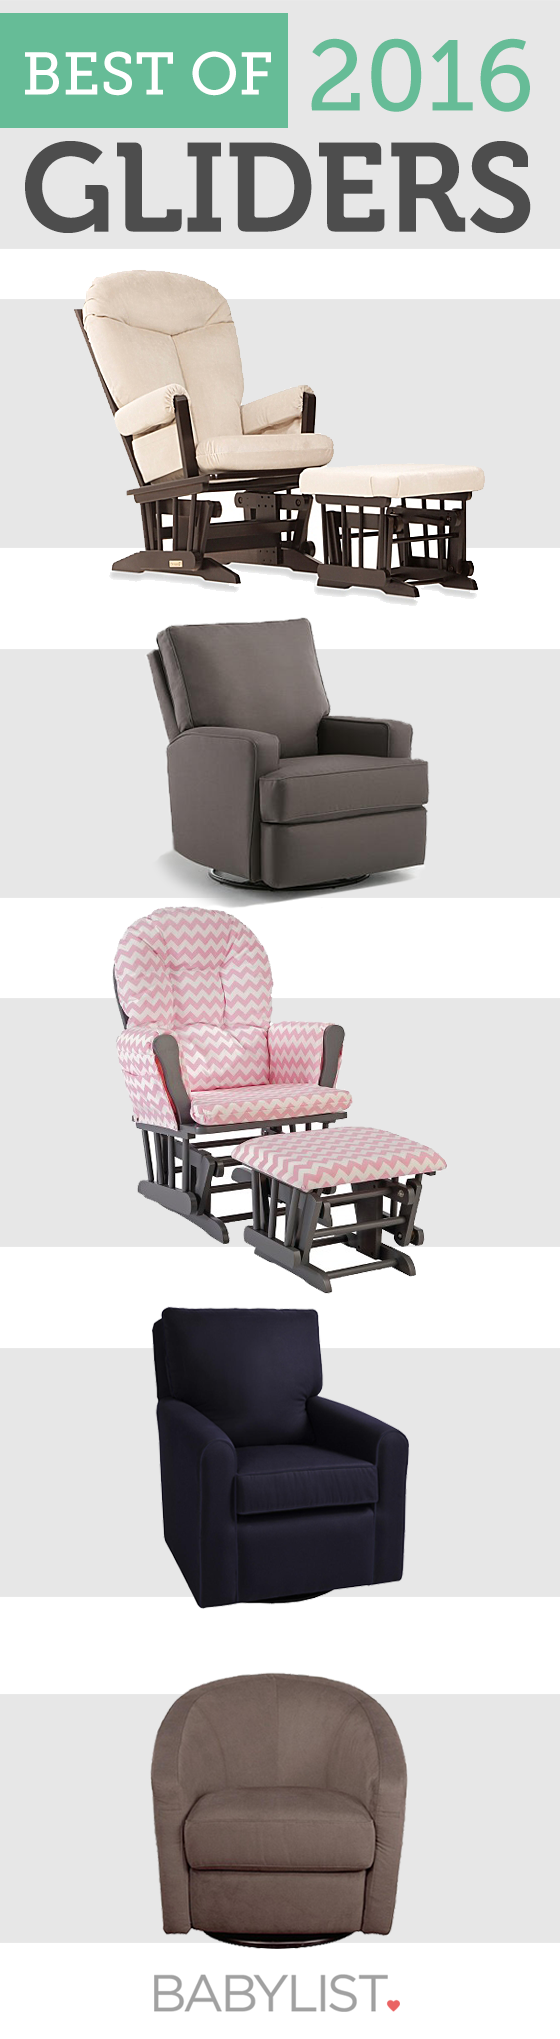 For centuries, moms have used a rocking chair to soothe babies to sleep. Now the traditional rocker has major competitor: the glider.